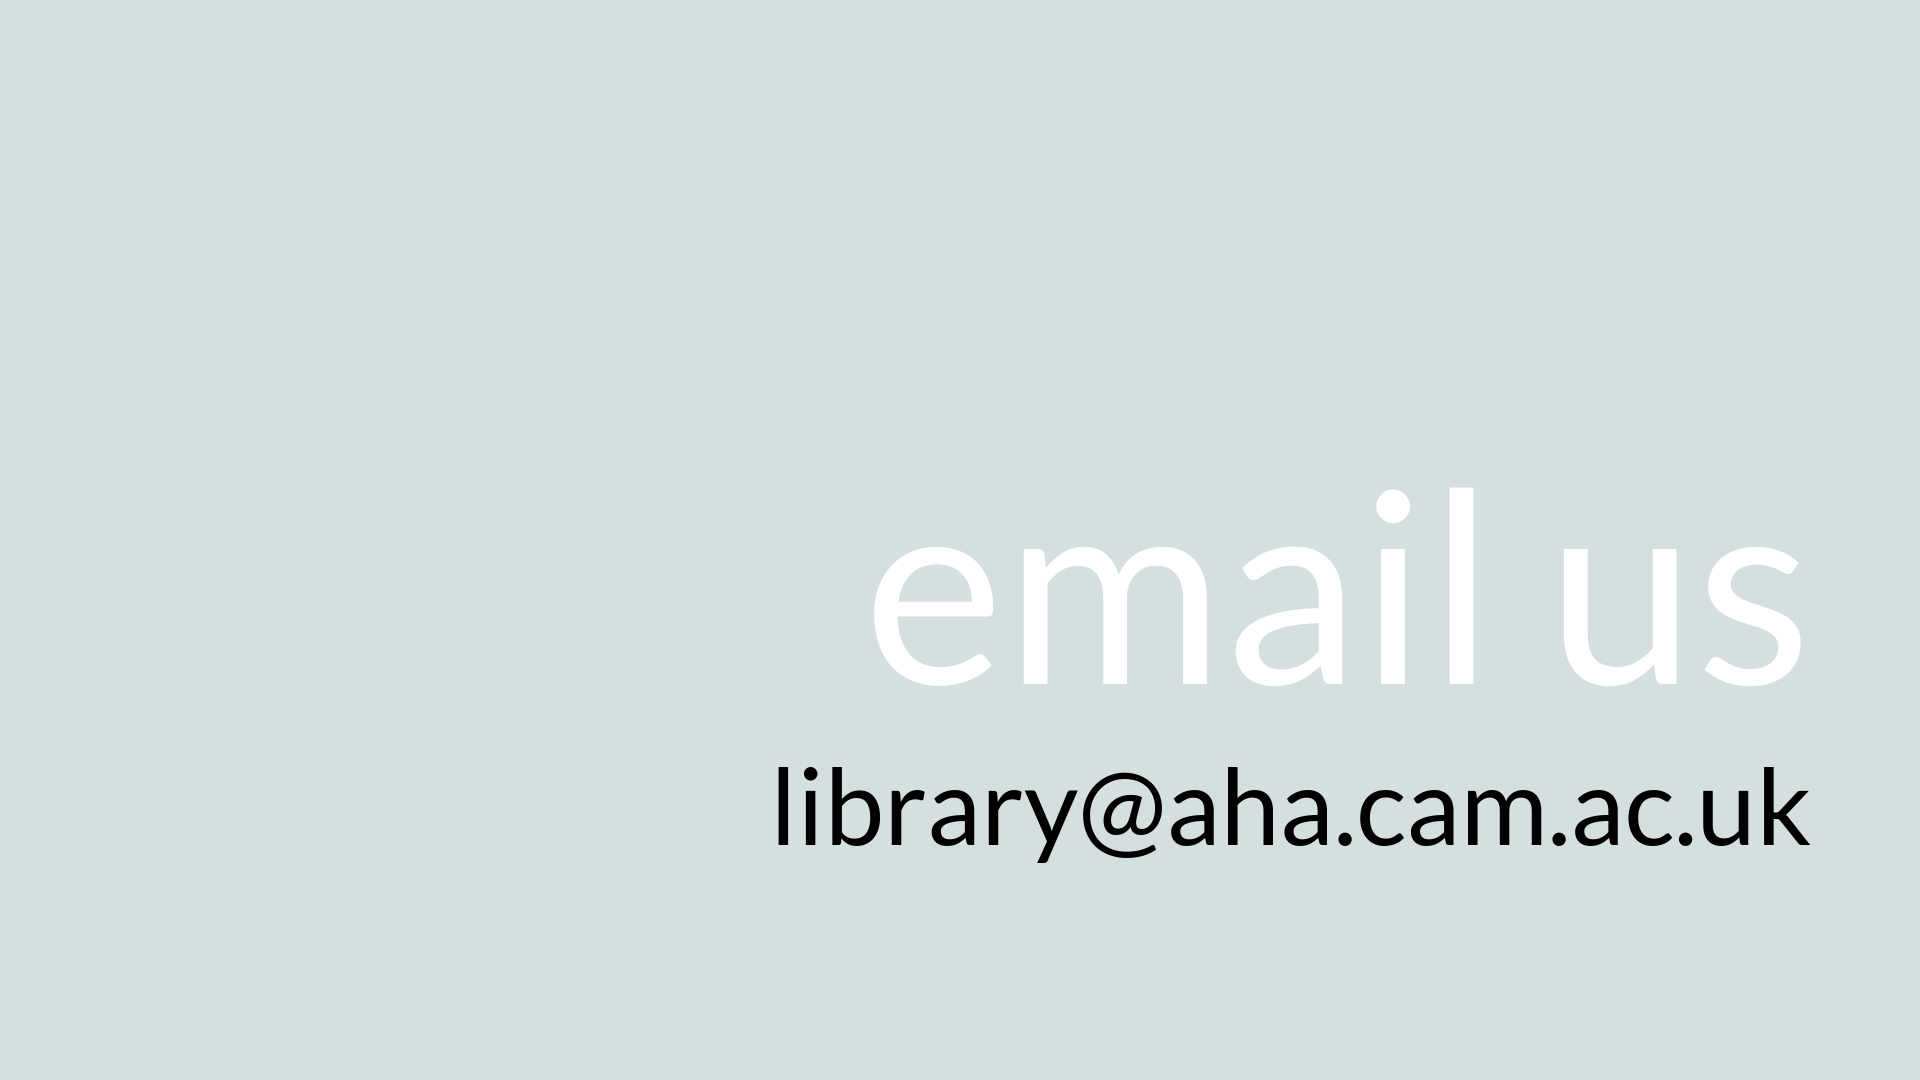 Click here to send us an email. Library email address is library@aha.cam.ac.uk